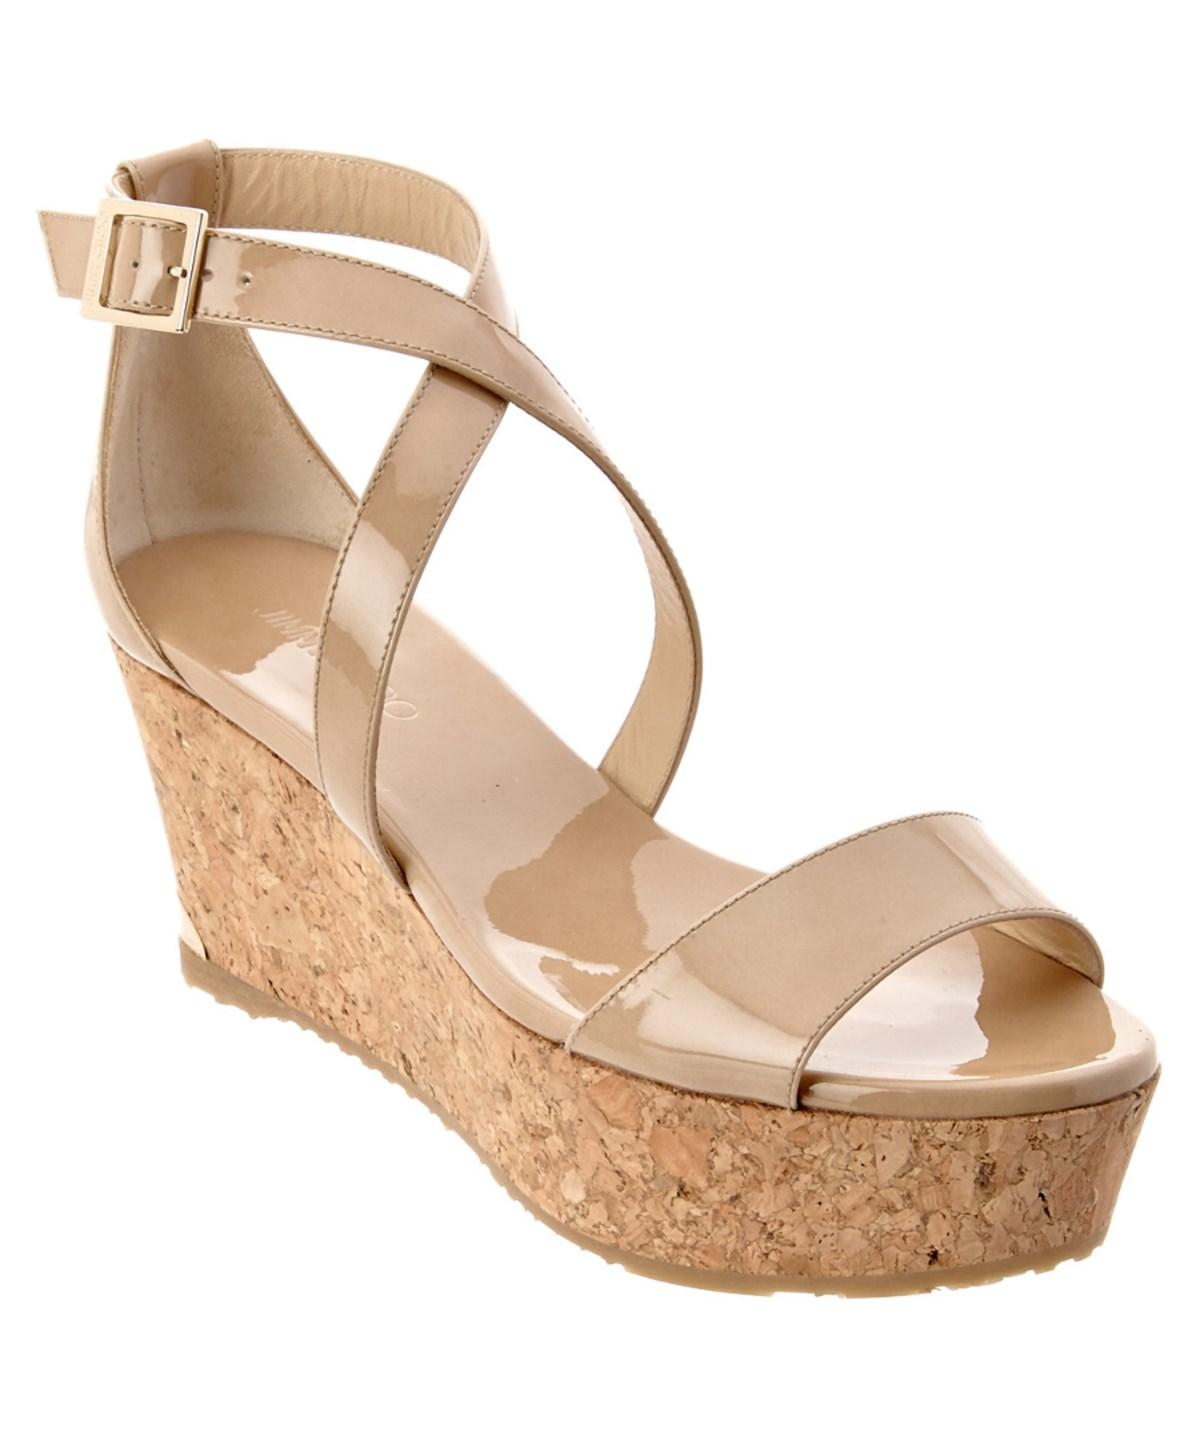 JIMMY CHOO PORTIA 70 PATENT CORK WEDGE SANDAL'